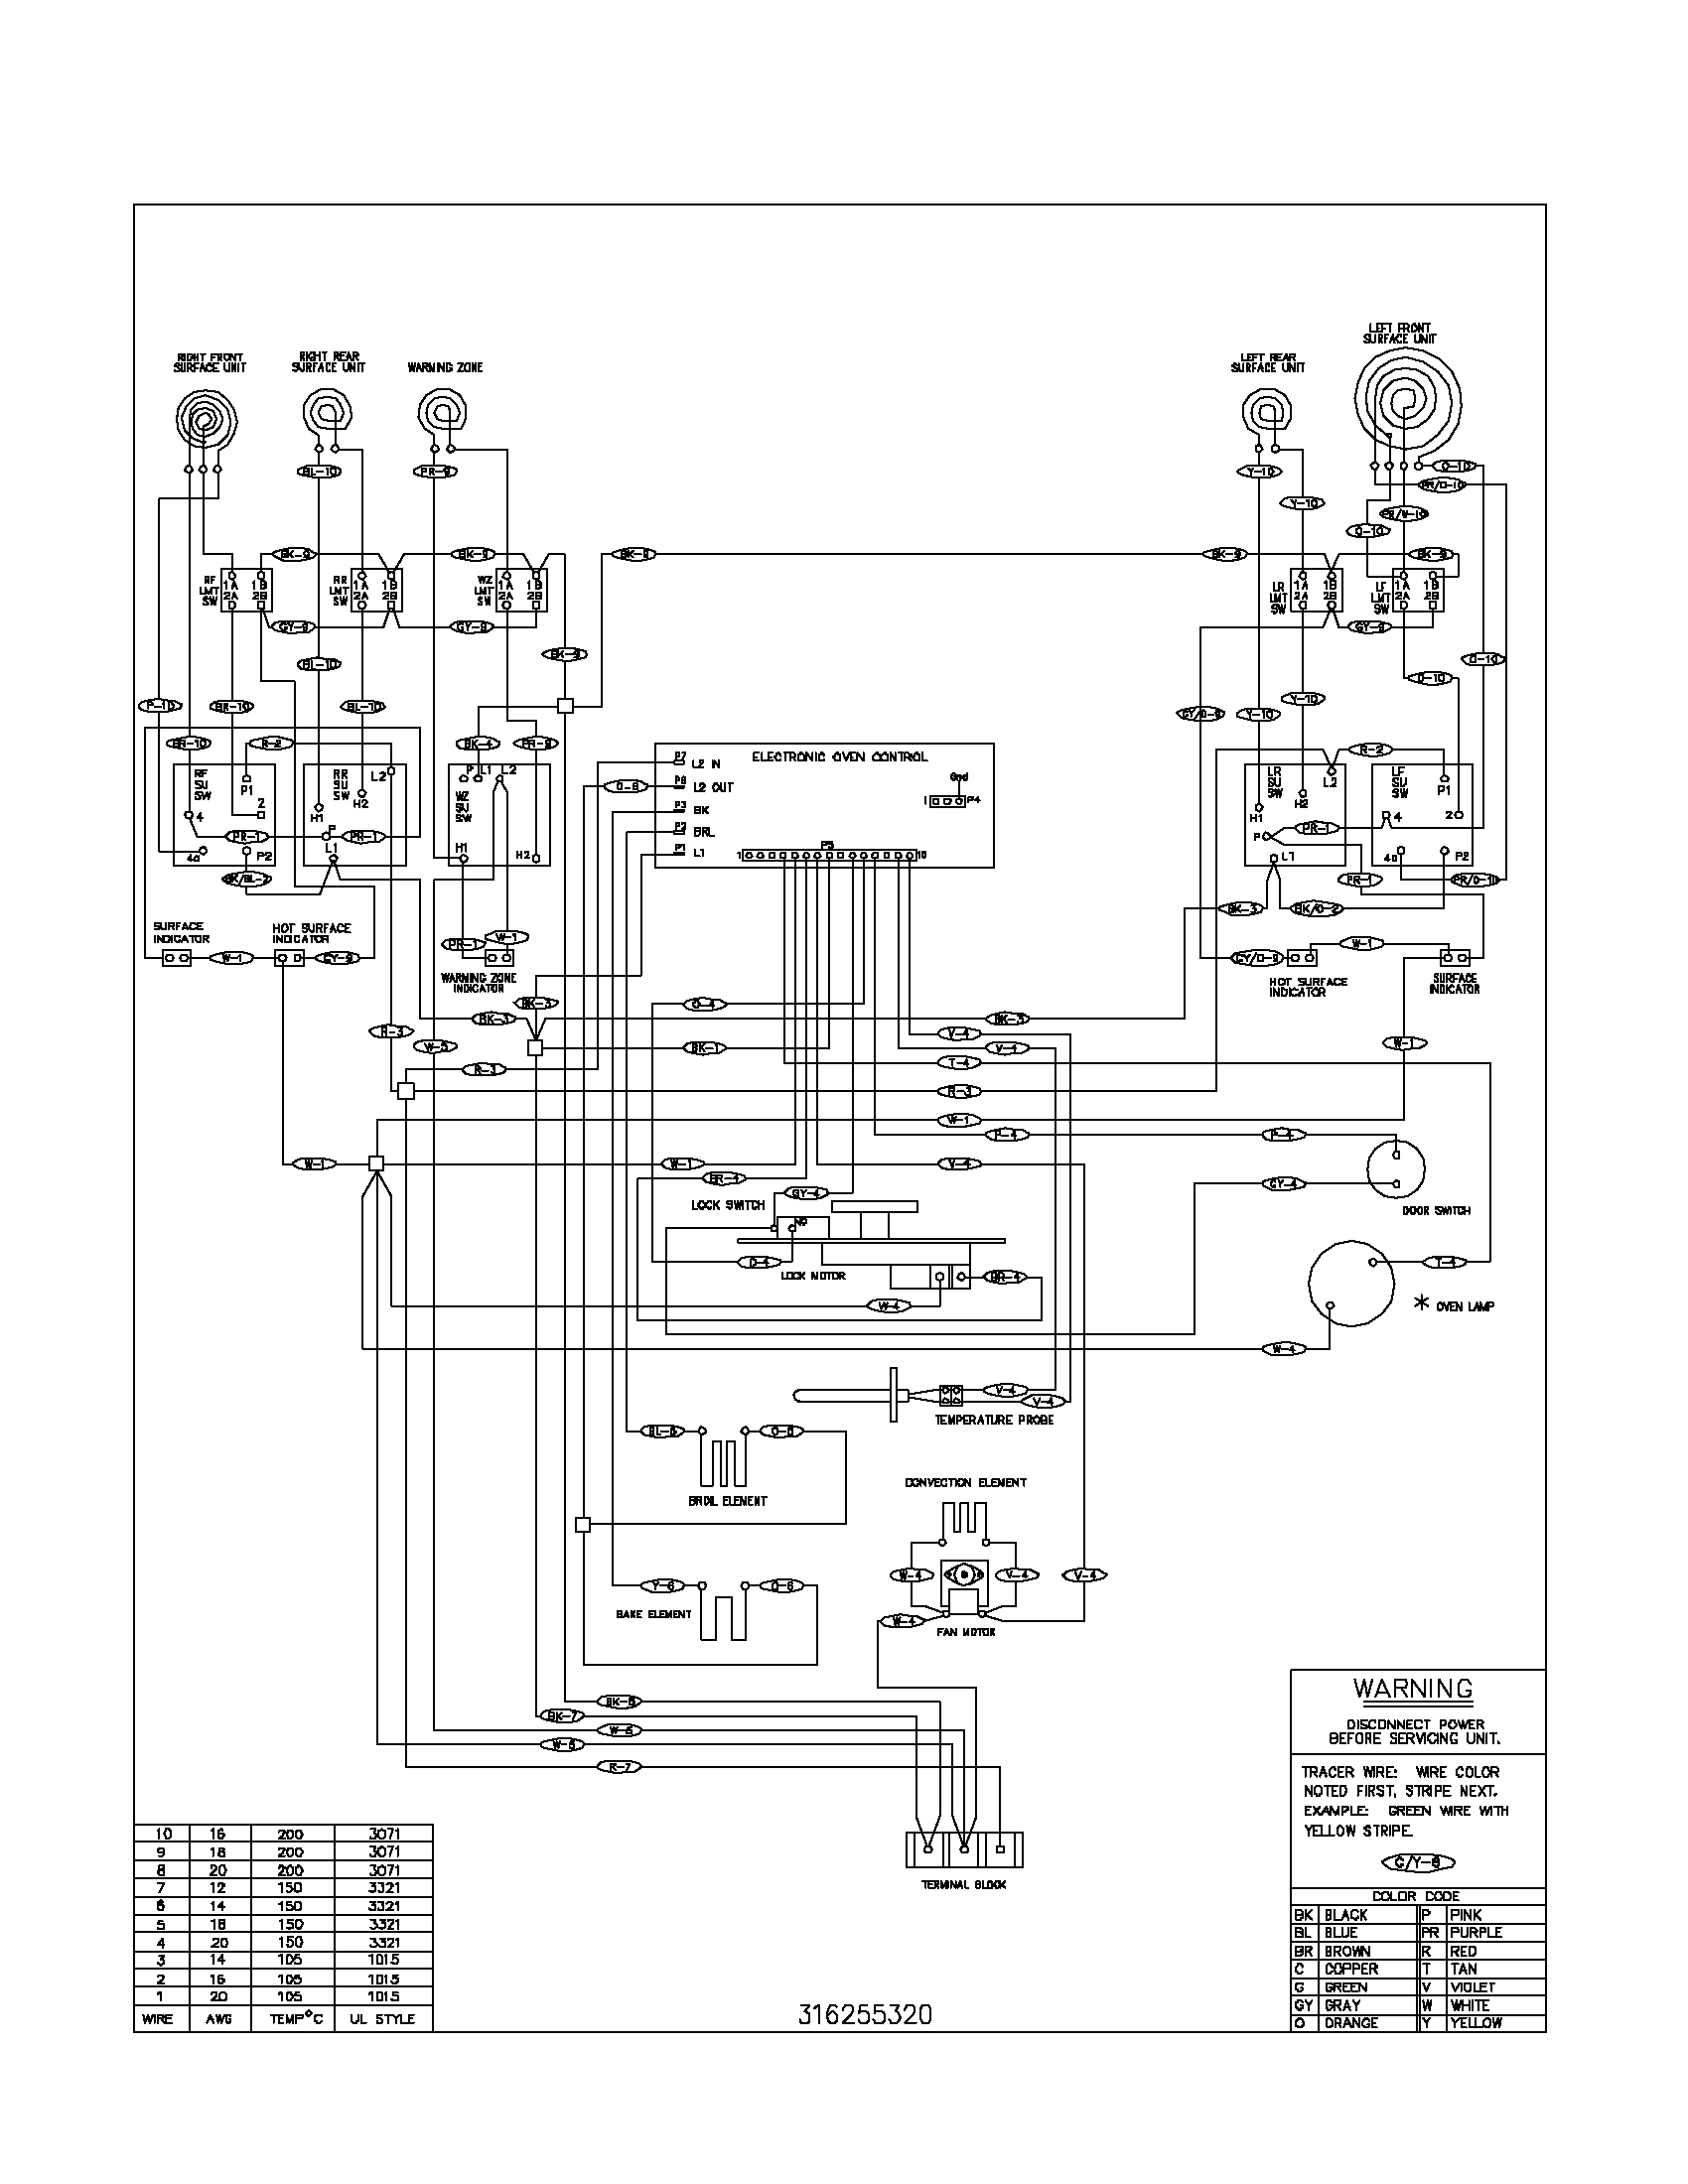 wiring diagram for electric cooktop online wiring diagram rh 11 code3e co  jenn air electric downdraft cooktop wiring diagram ge electric cooktop  wiring